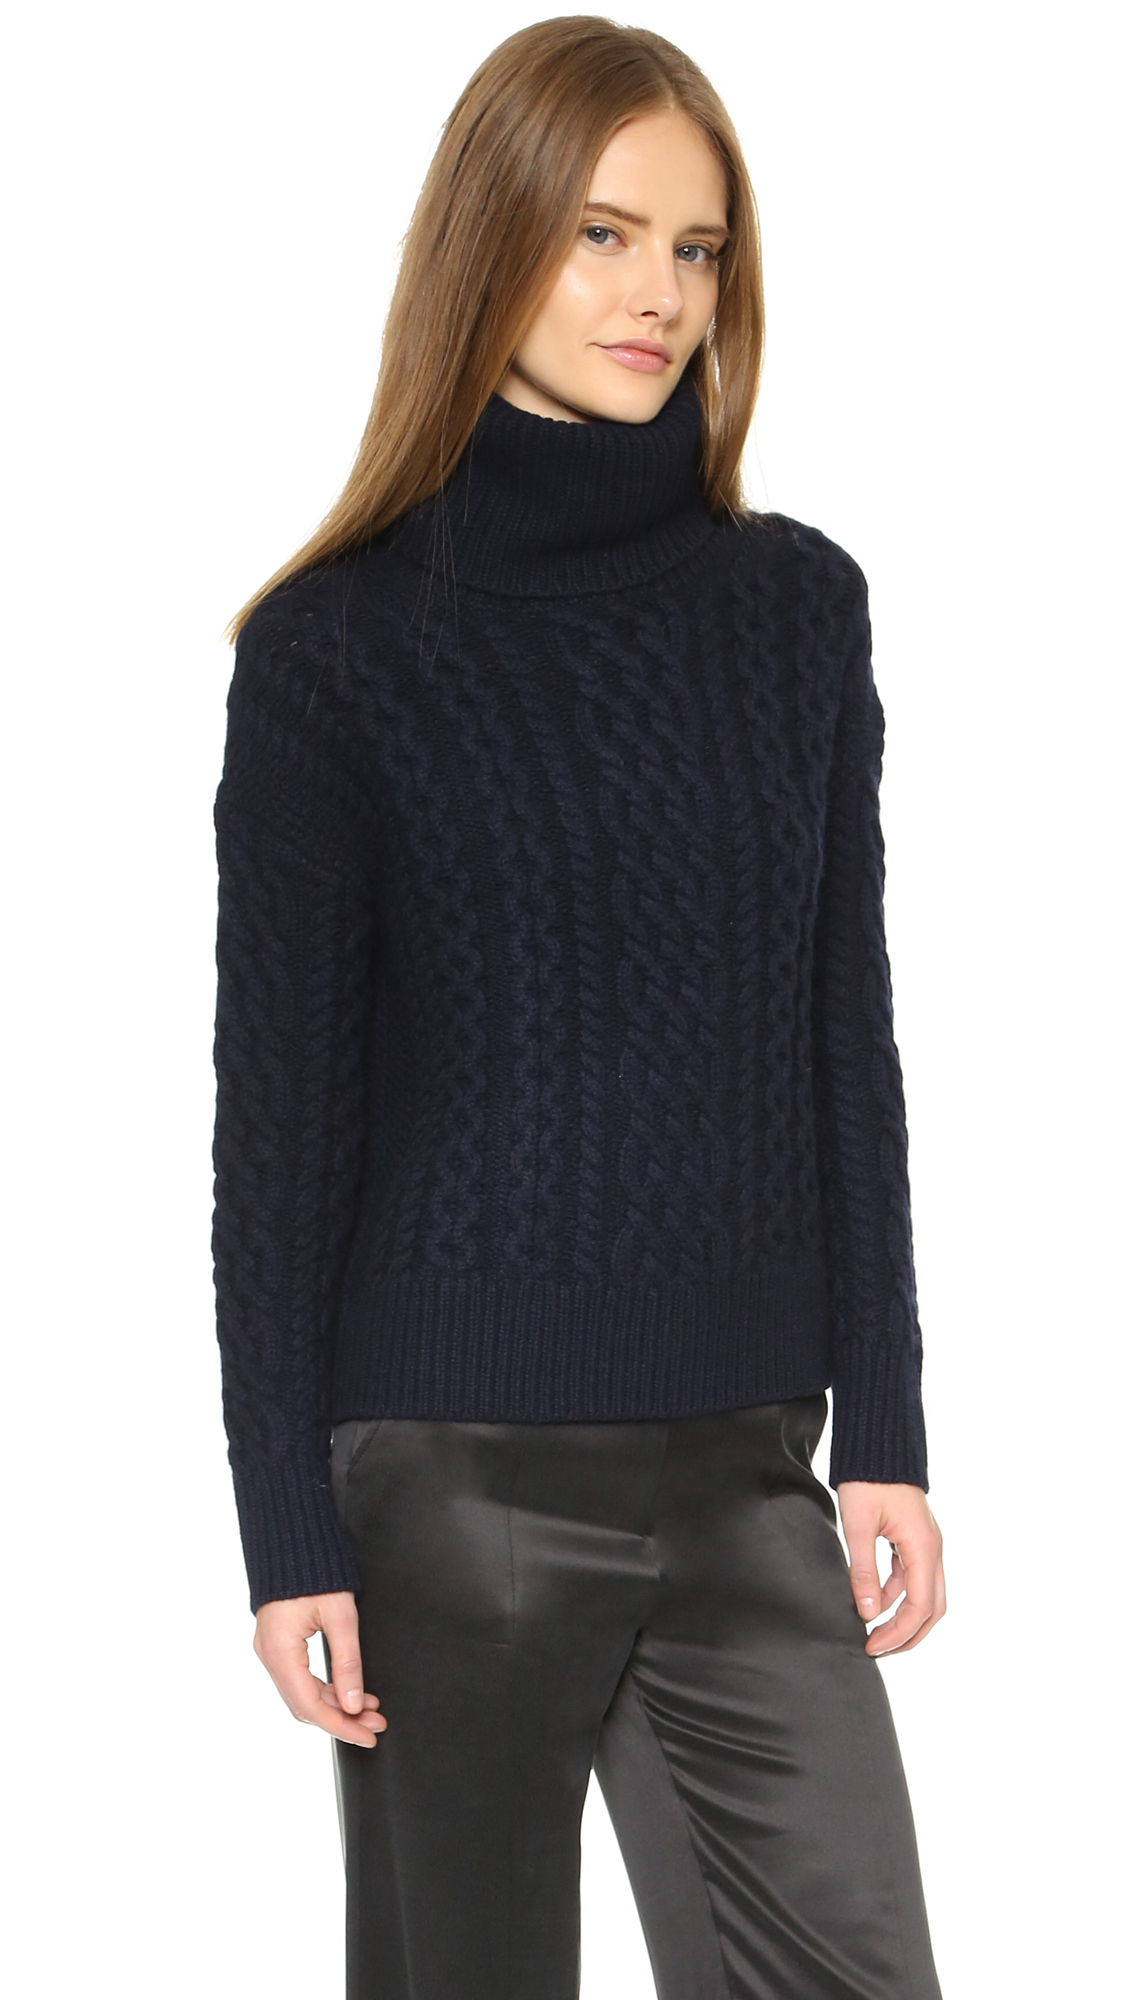 Nili lotan Aran Cashmere Turtleneck Sweater - Dark Navy in ...